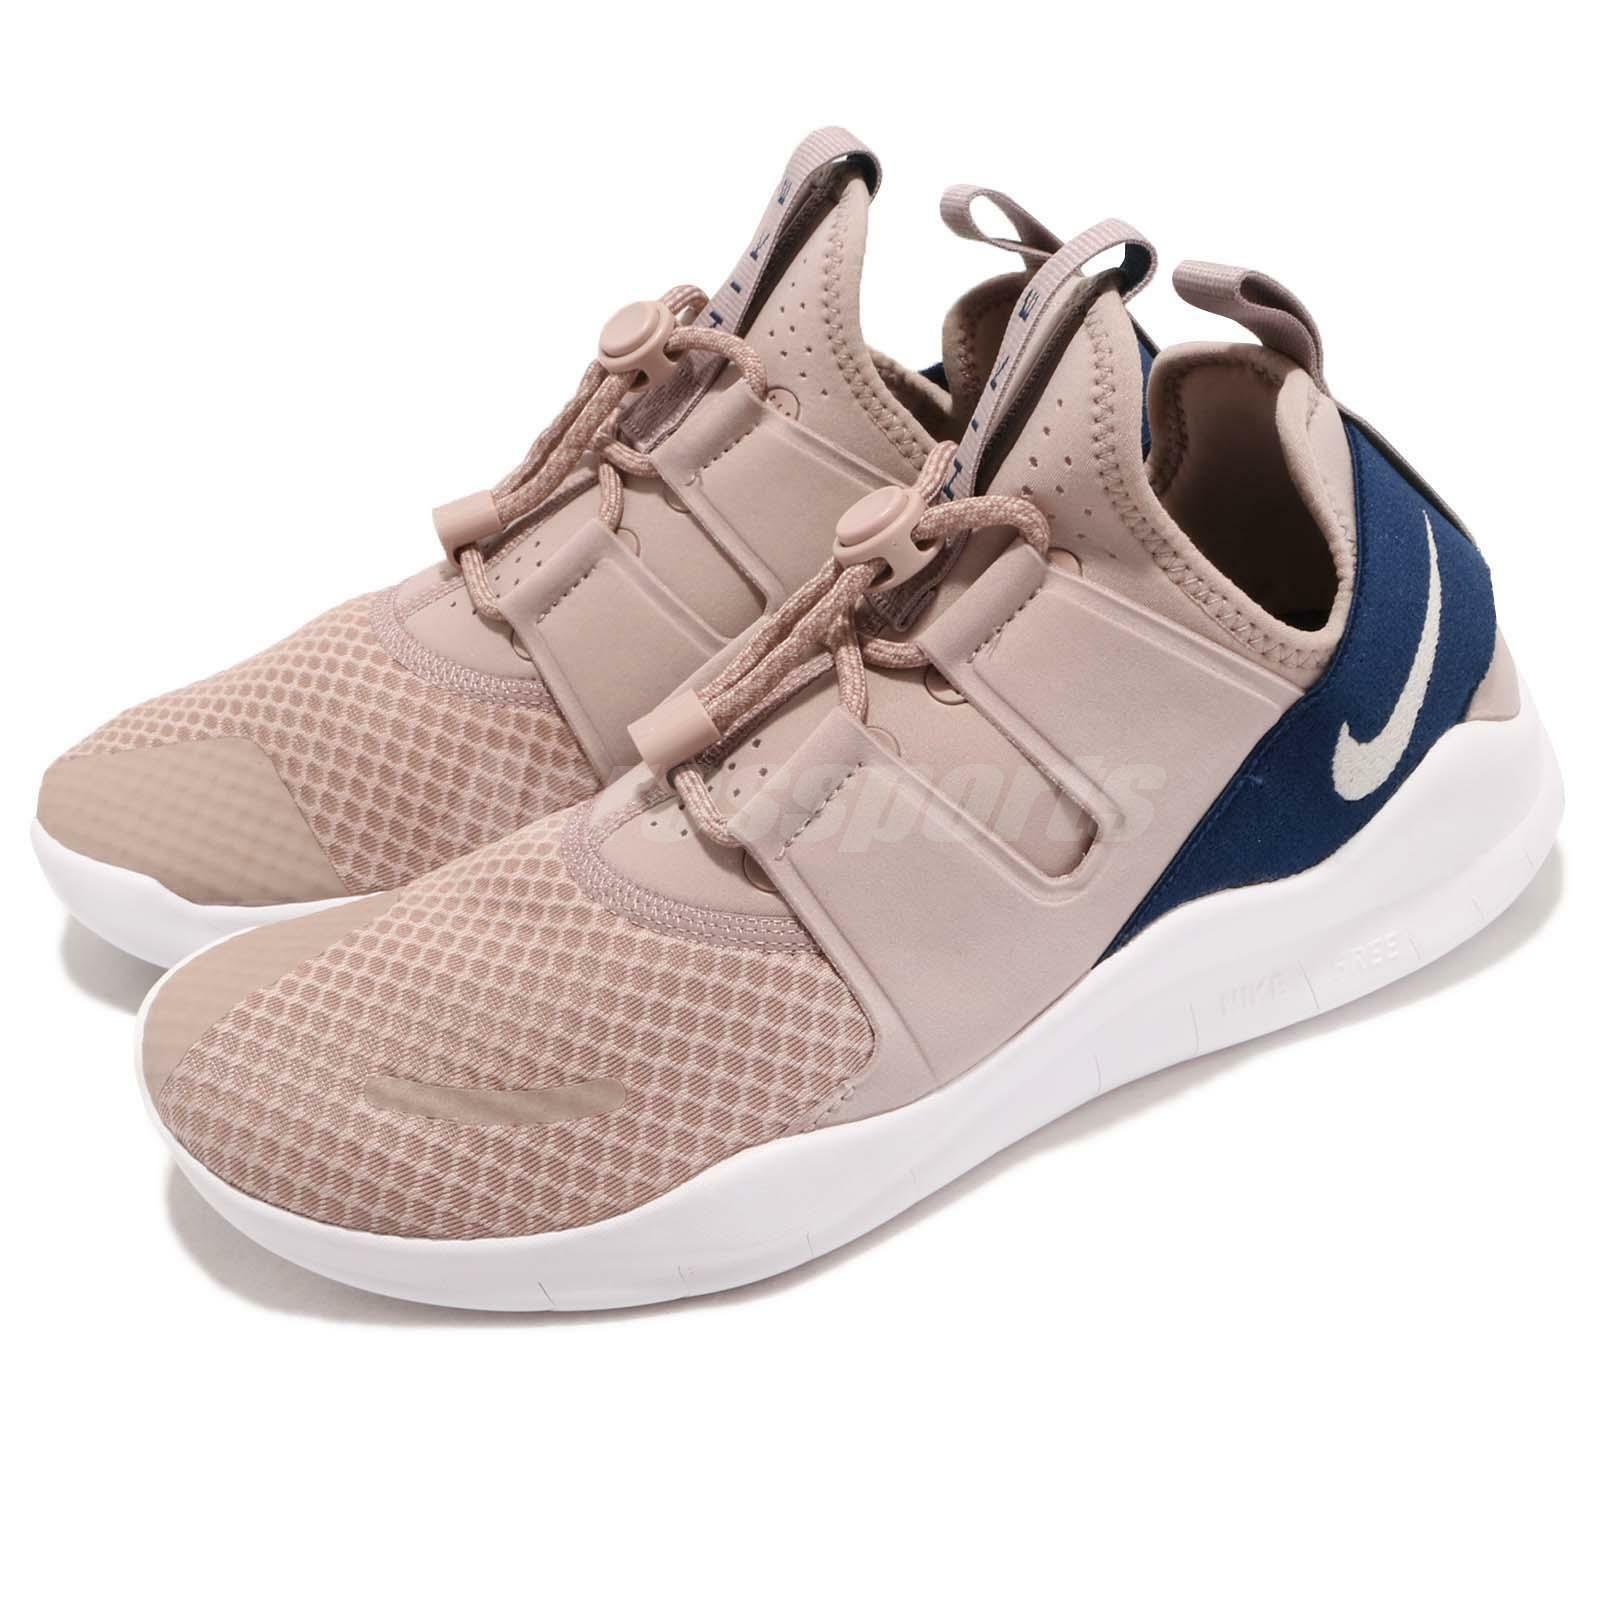 Nike Free RN CMTR 2018 Run Diffused Taupe Beige bluee Lifestyle shoes AA1620-200